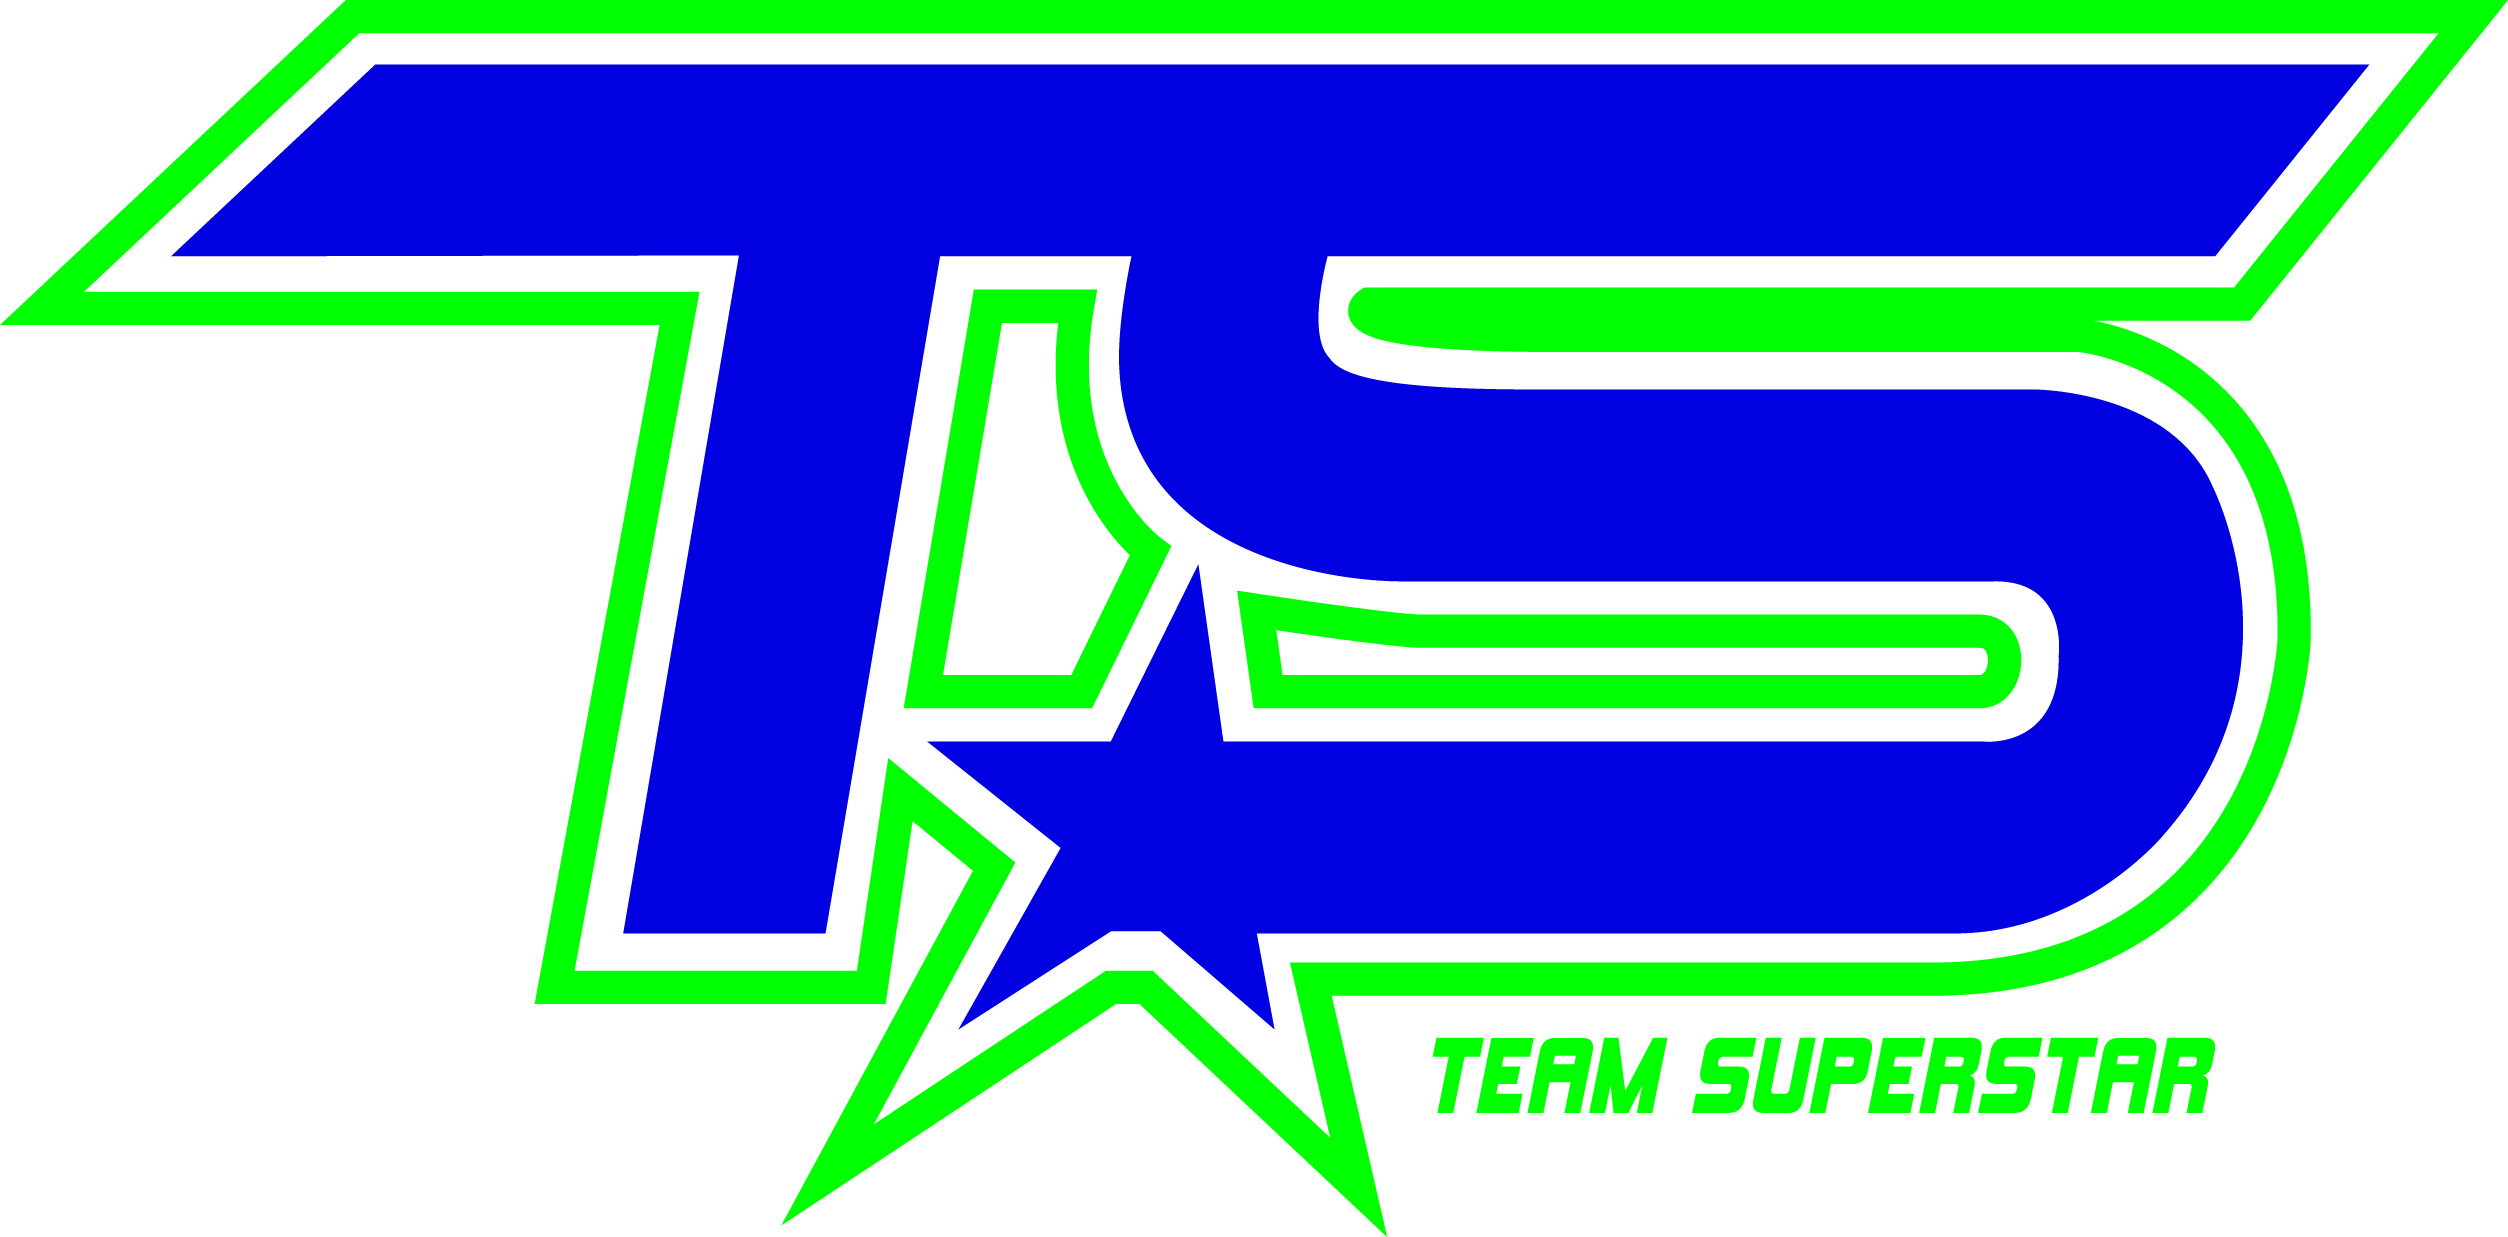 Team Superstar